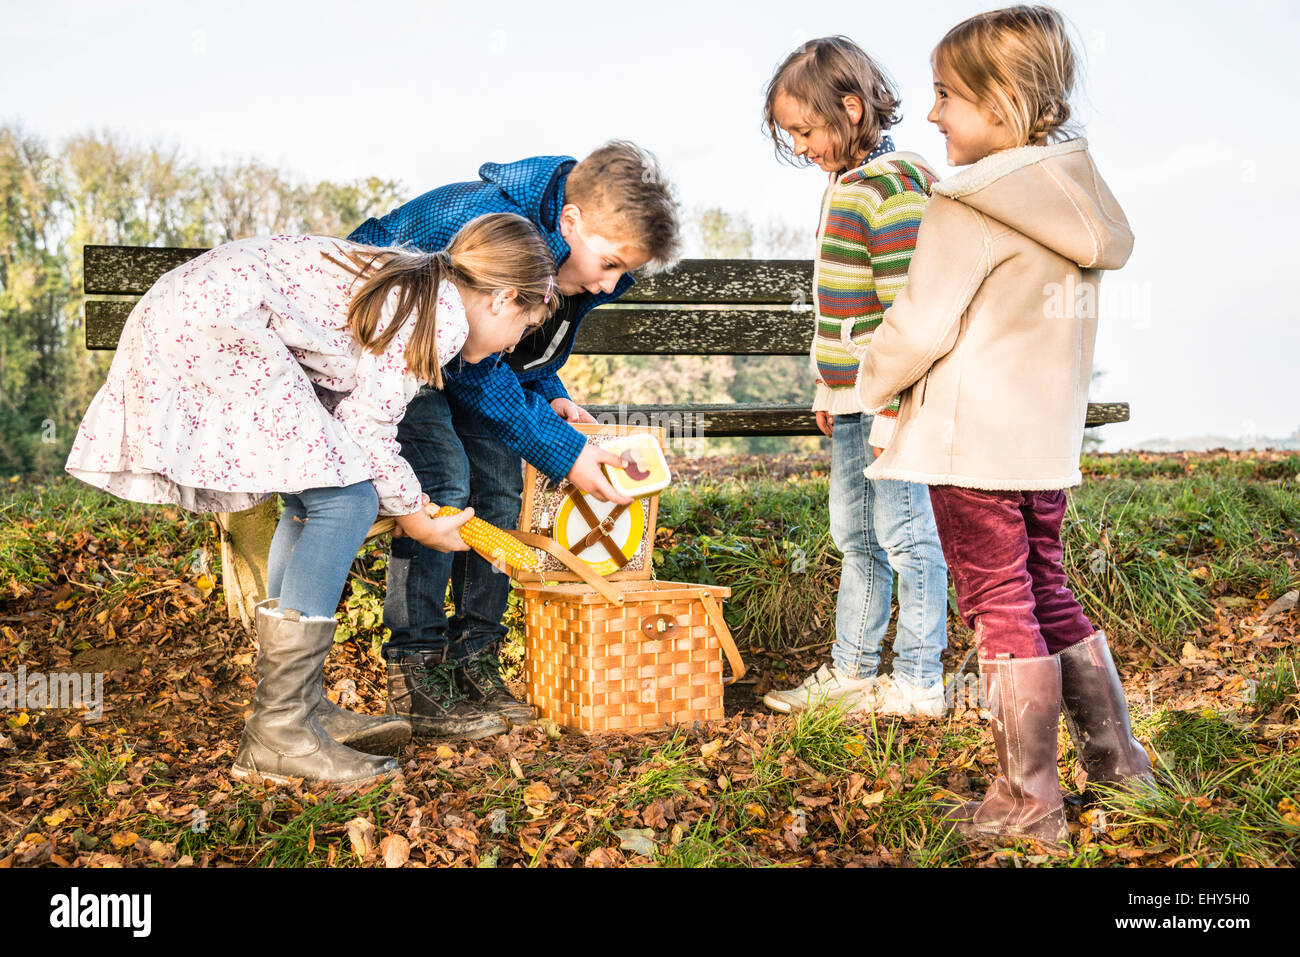 Children looking into picnic basket Stock Photo